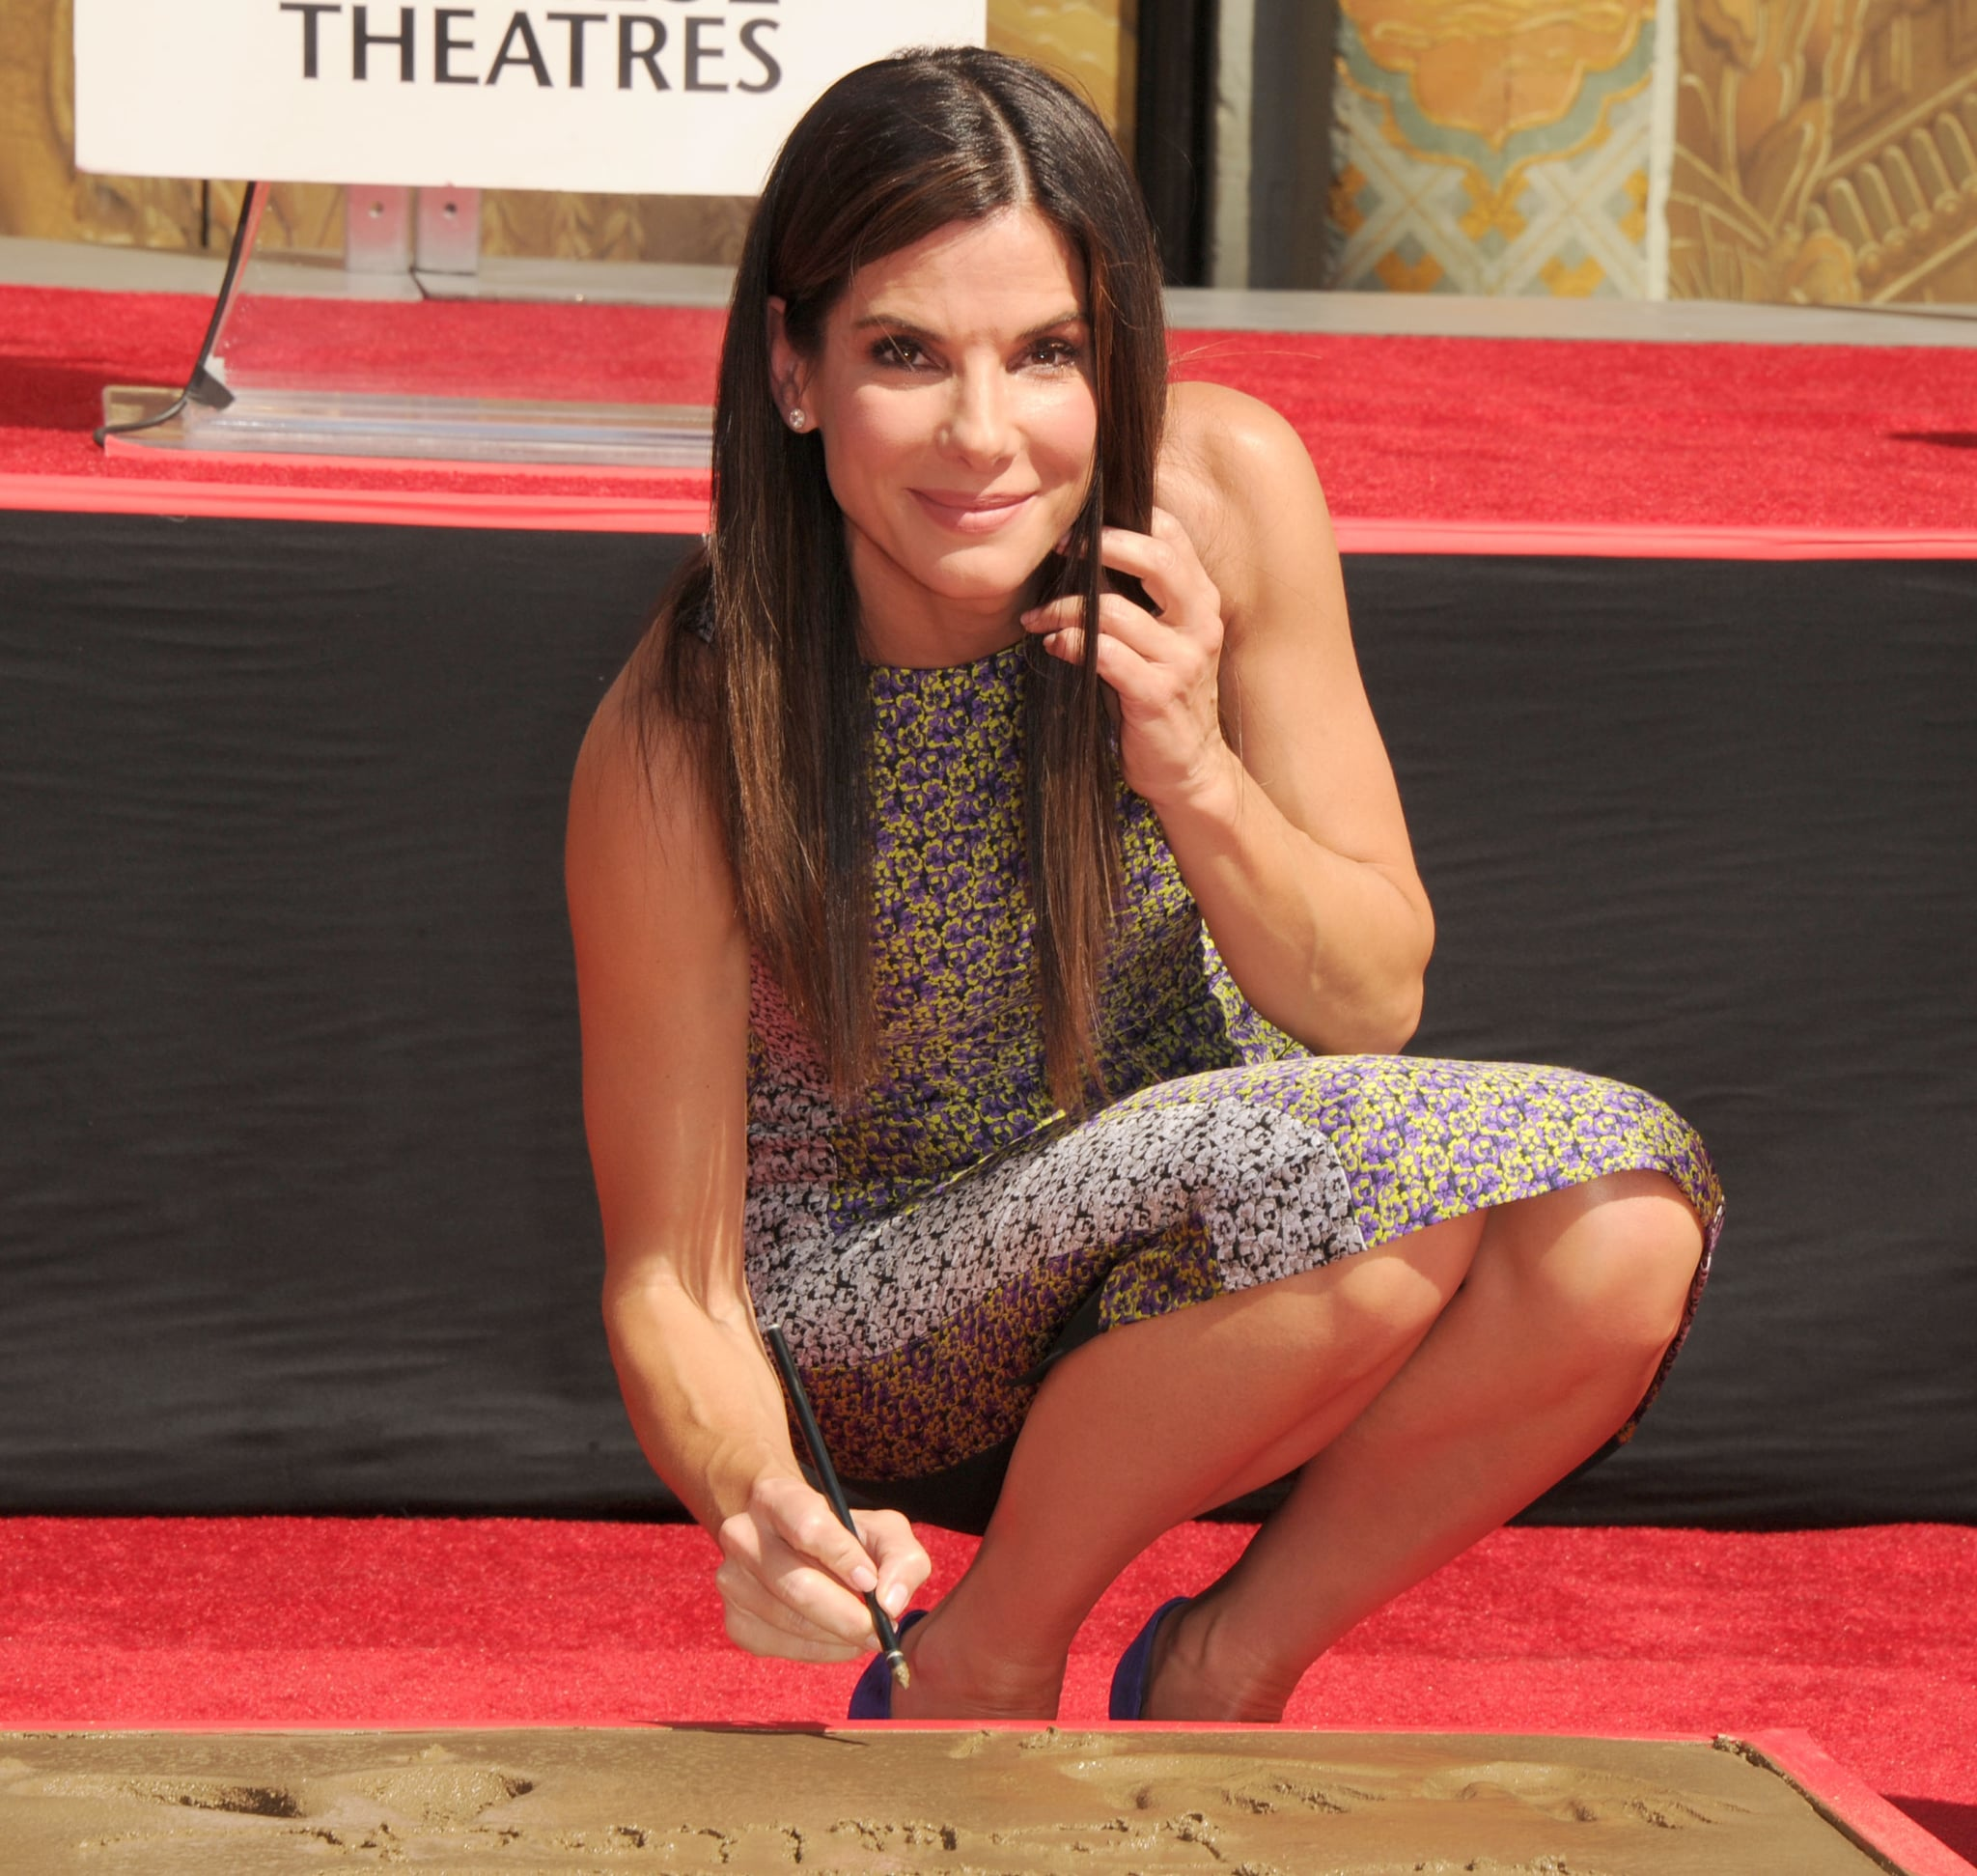 Sandra Bullock signed her slab at the TCL Chinese Theatre on Wednesday.